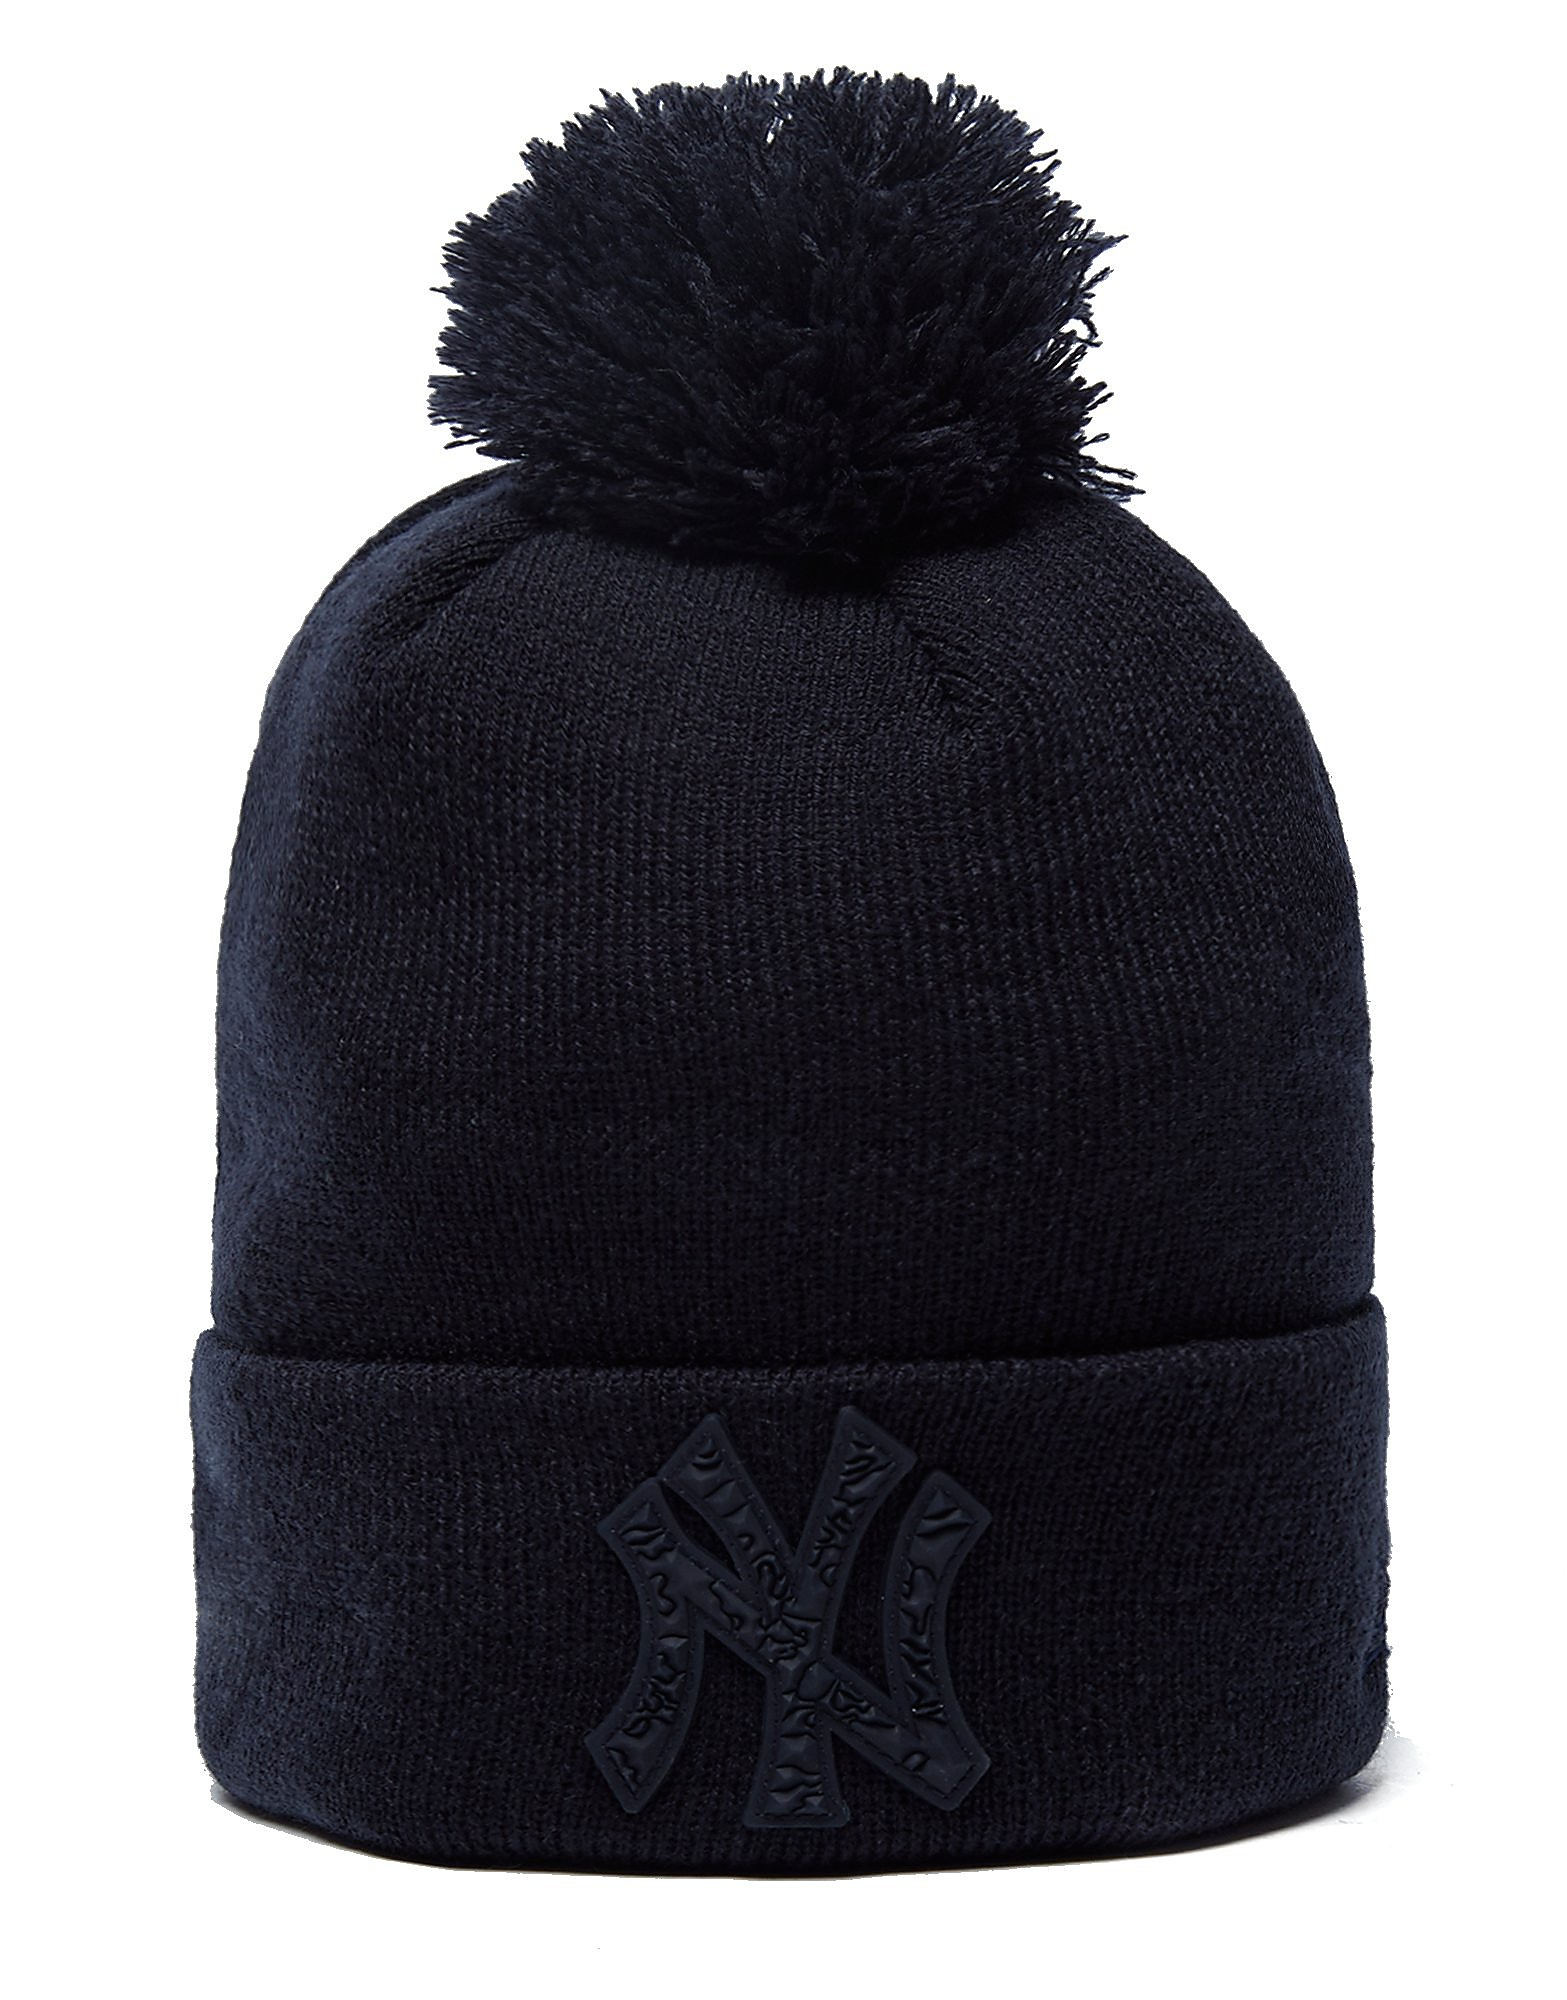 New Era MLB New York Yankees Pom Beanie